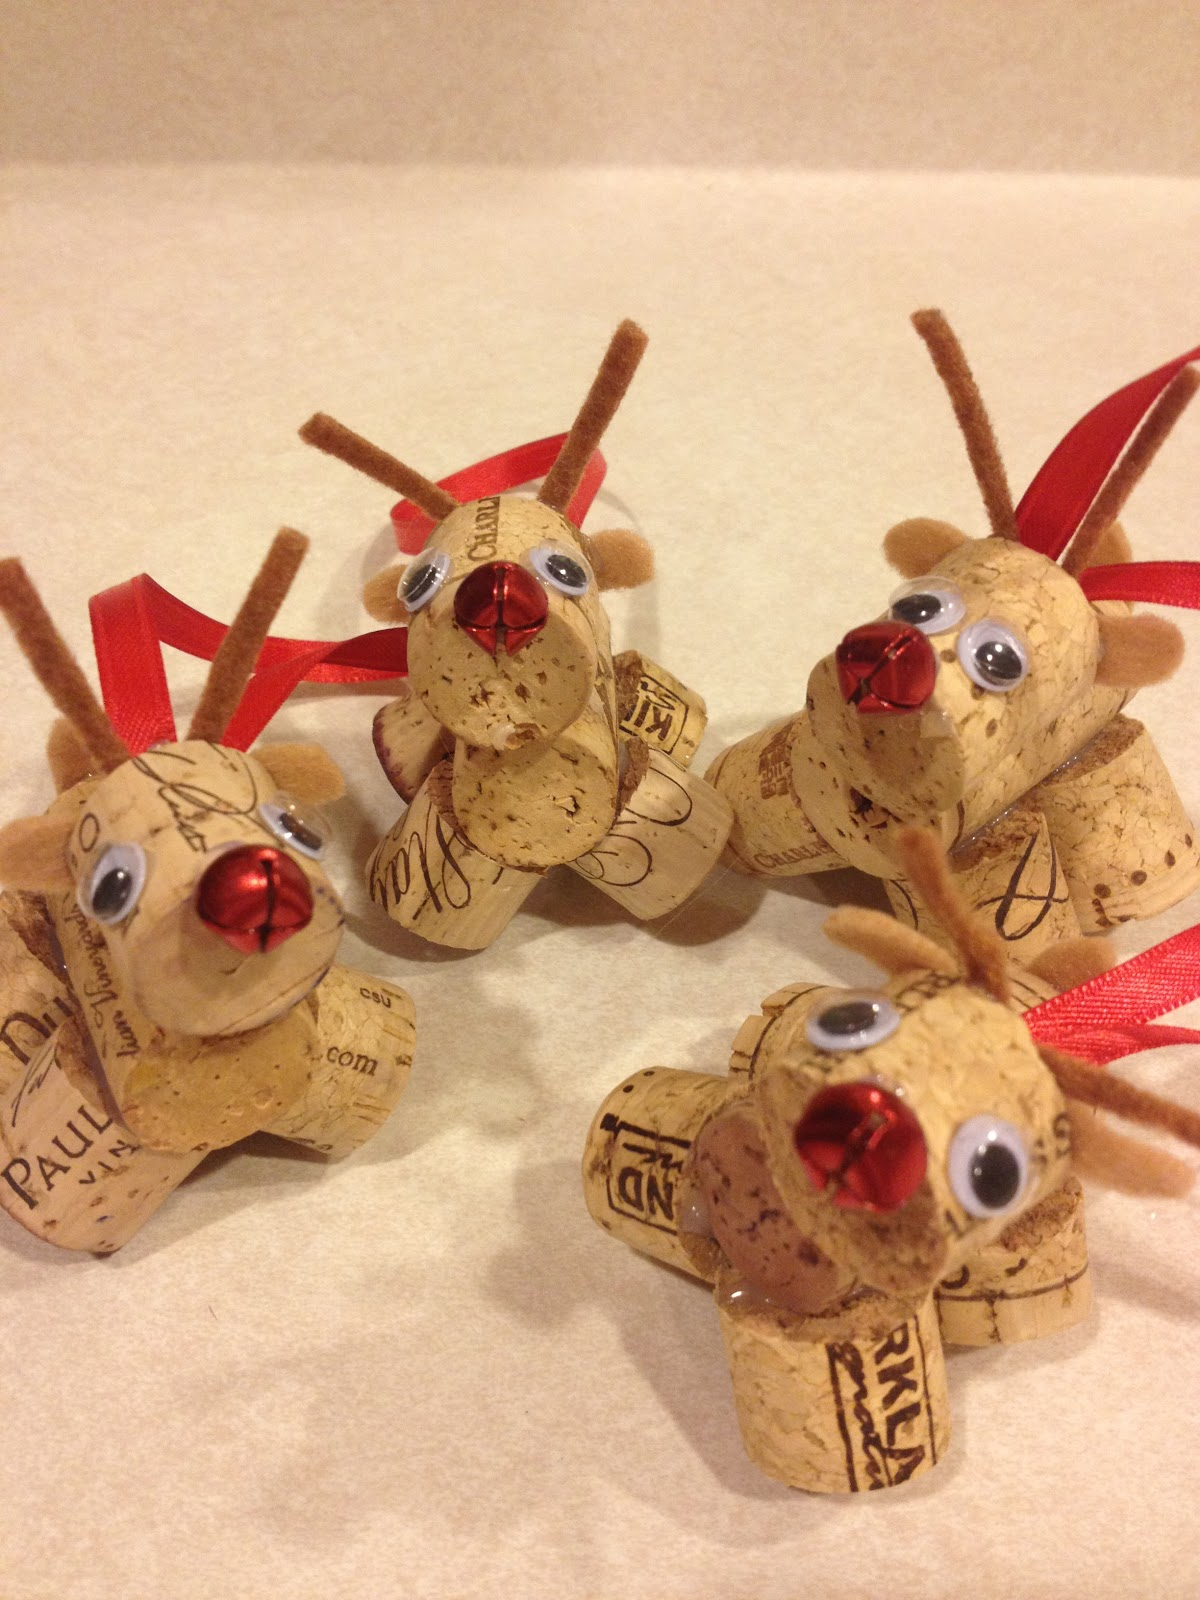 Ornaments made from wine corks -  Rudolph Ornaments Made Of Wine Corks Flat Eye Ball Things Felt For The Antlers Ears And Tails Red Bells For The Noses Red Ribbon And A Lot Of Hot